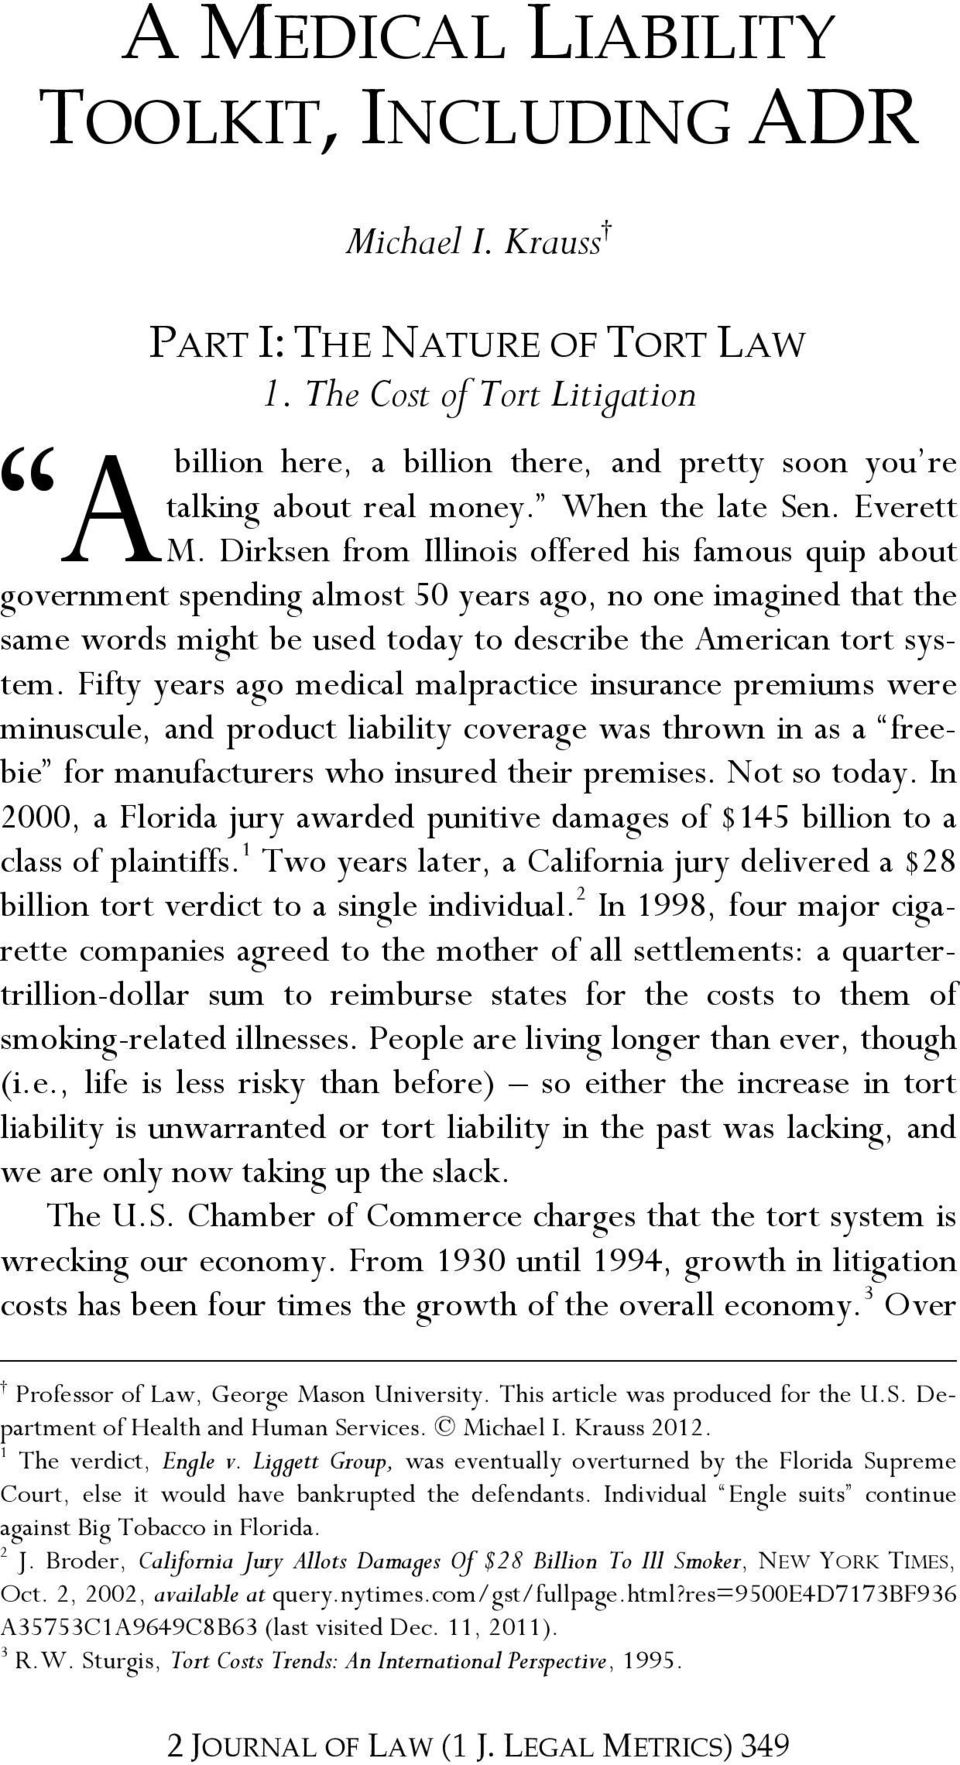 Dirksen from Illinois offered his famous quip about government spending almost 50 years ago, no one imagined that the same words might be used today to describe the American tort system.